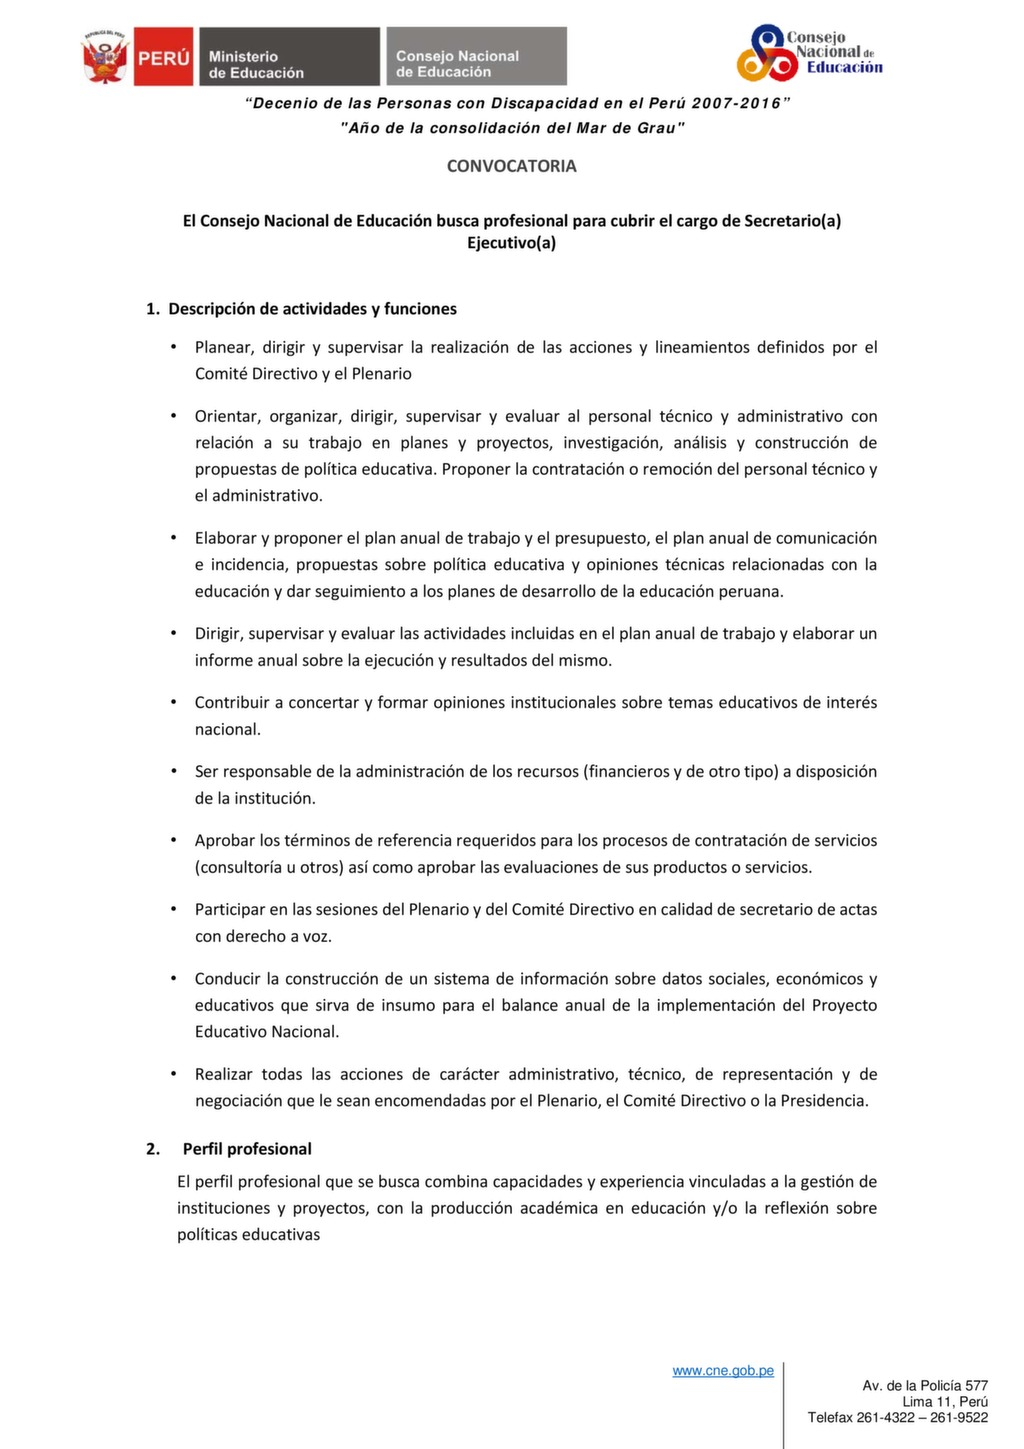 Convocatoria docente para 2016 secretaria de educacion en for Convocatoria de docentes 2016